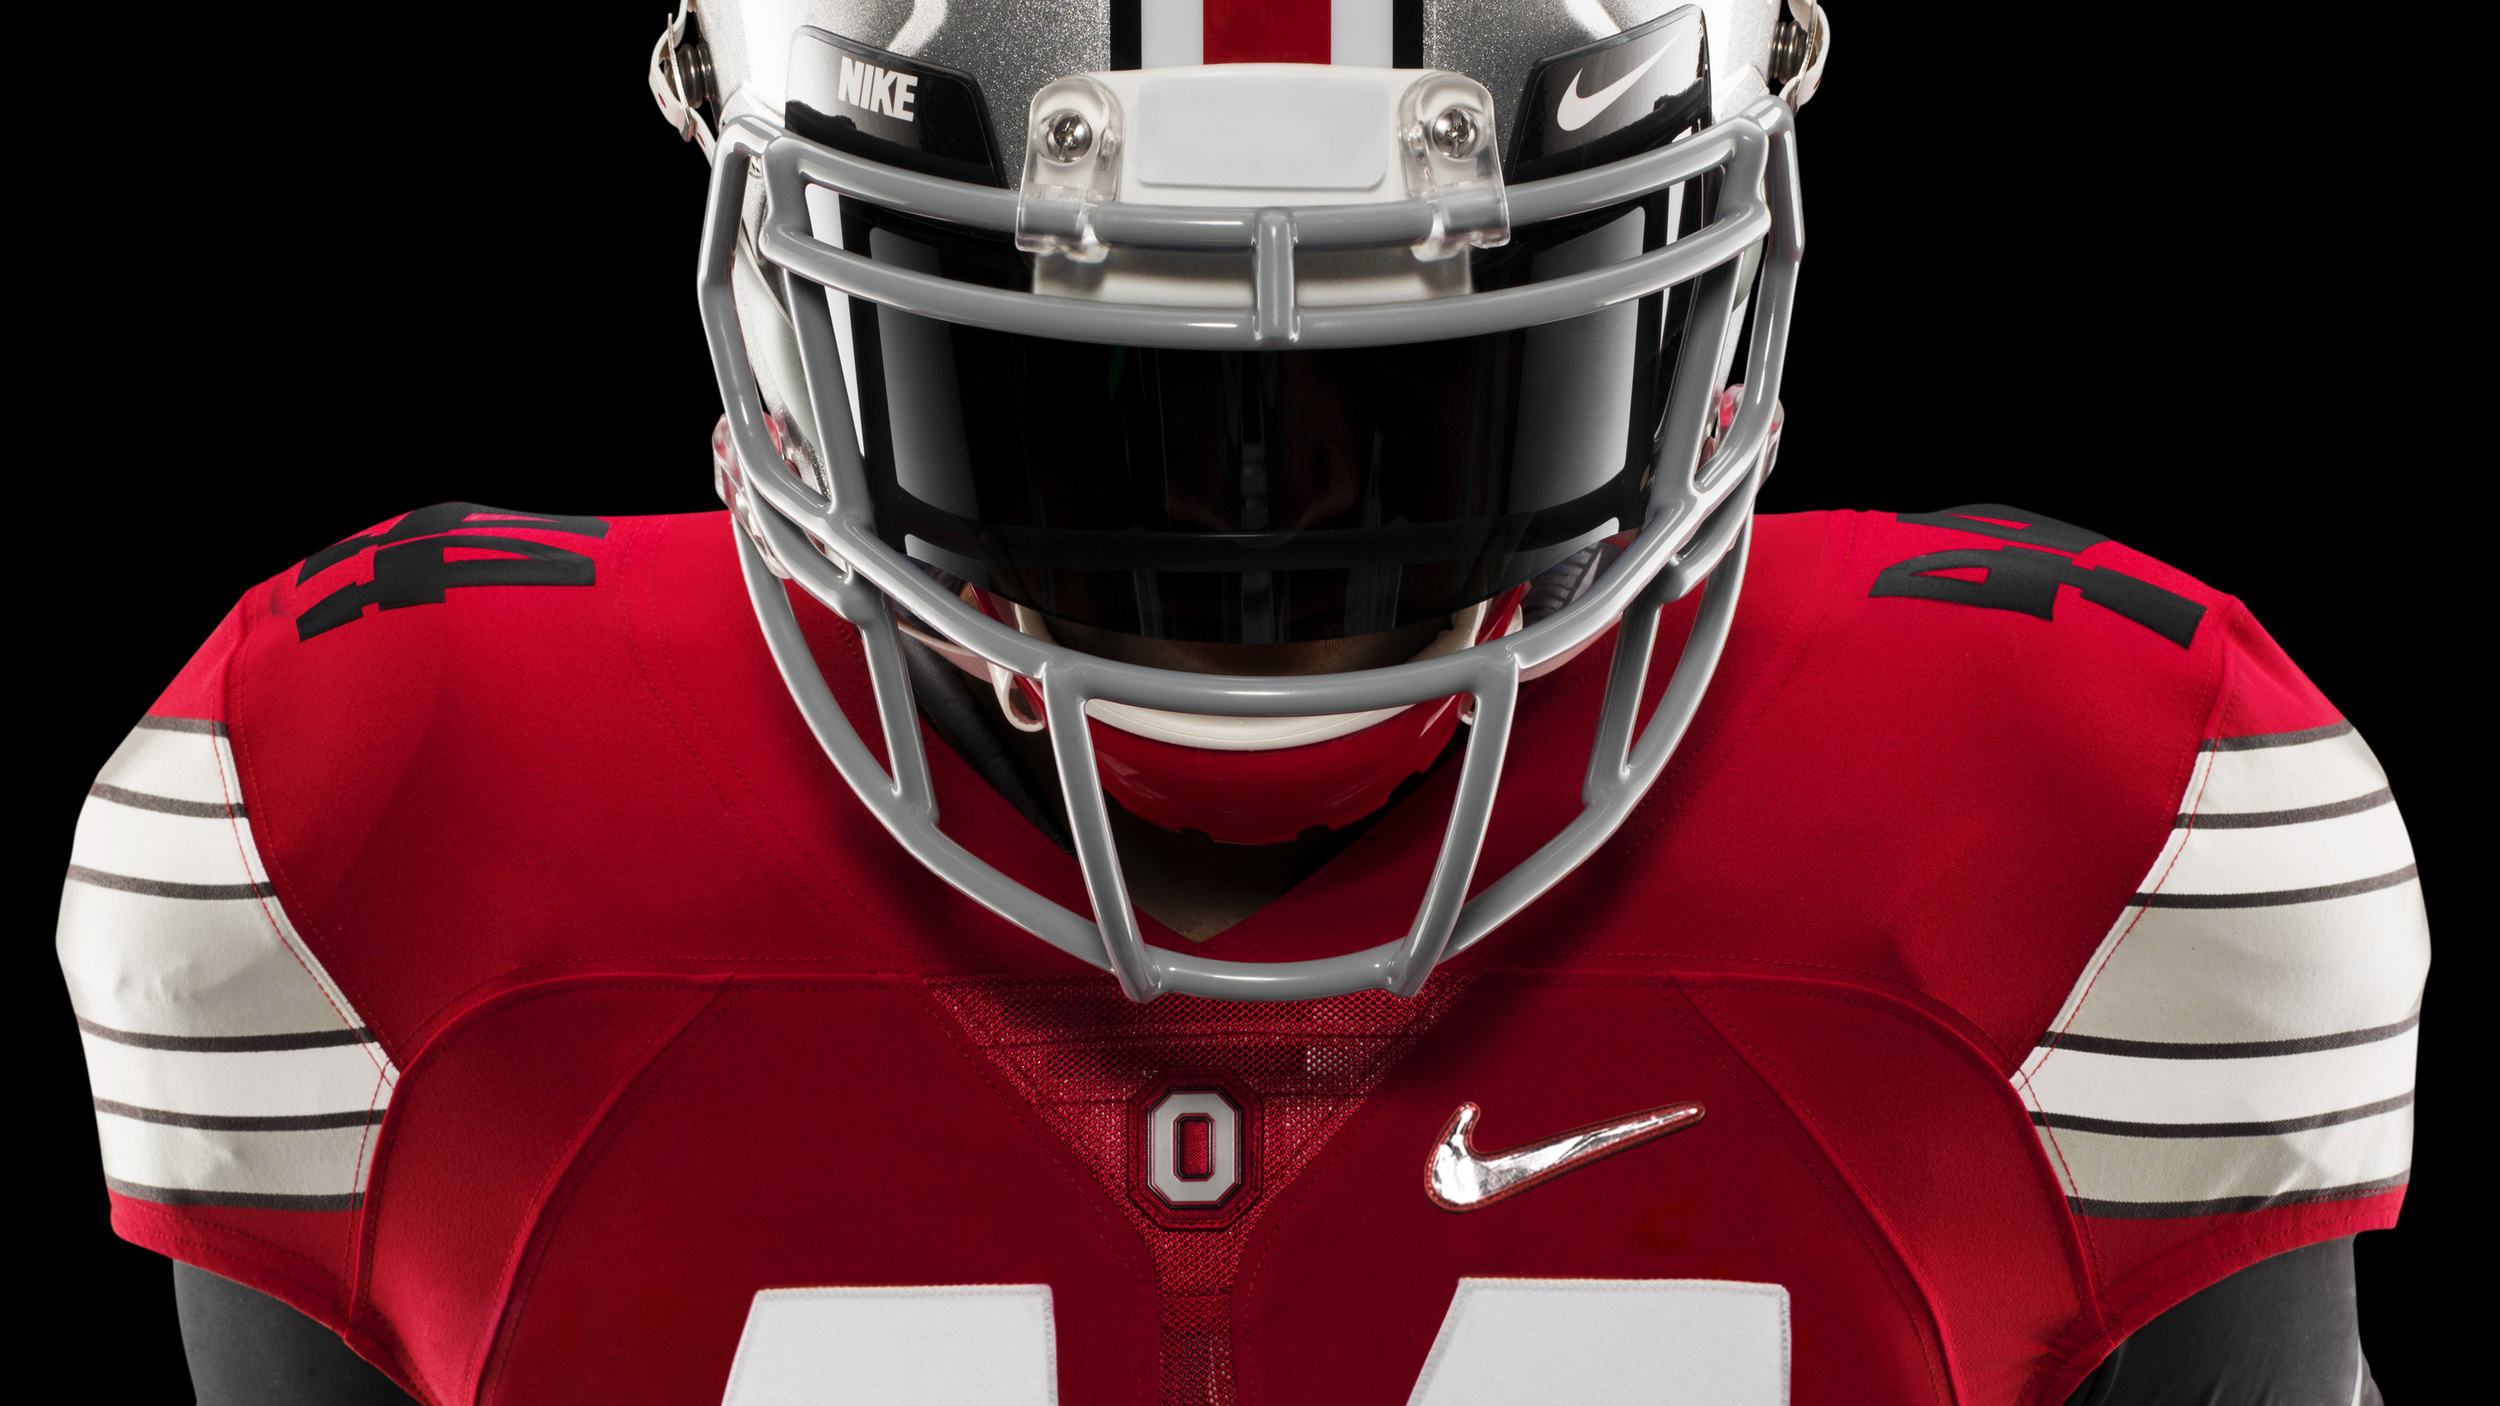 HO14_NFB_NCAA_Ohio_Uniform_1202_36407.jpg